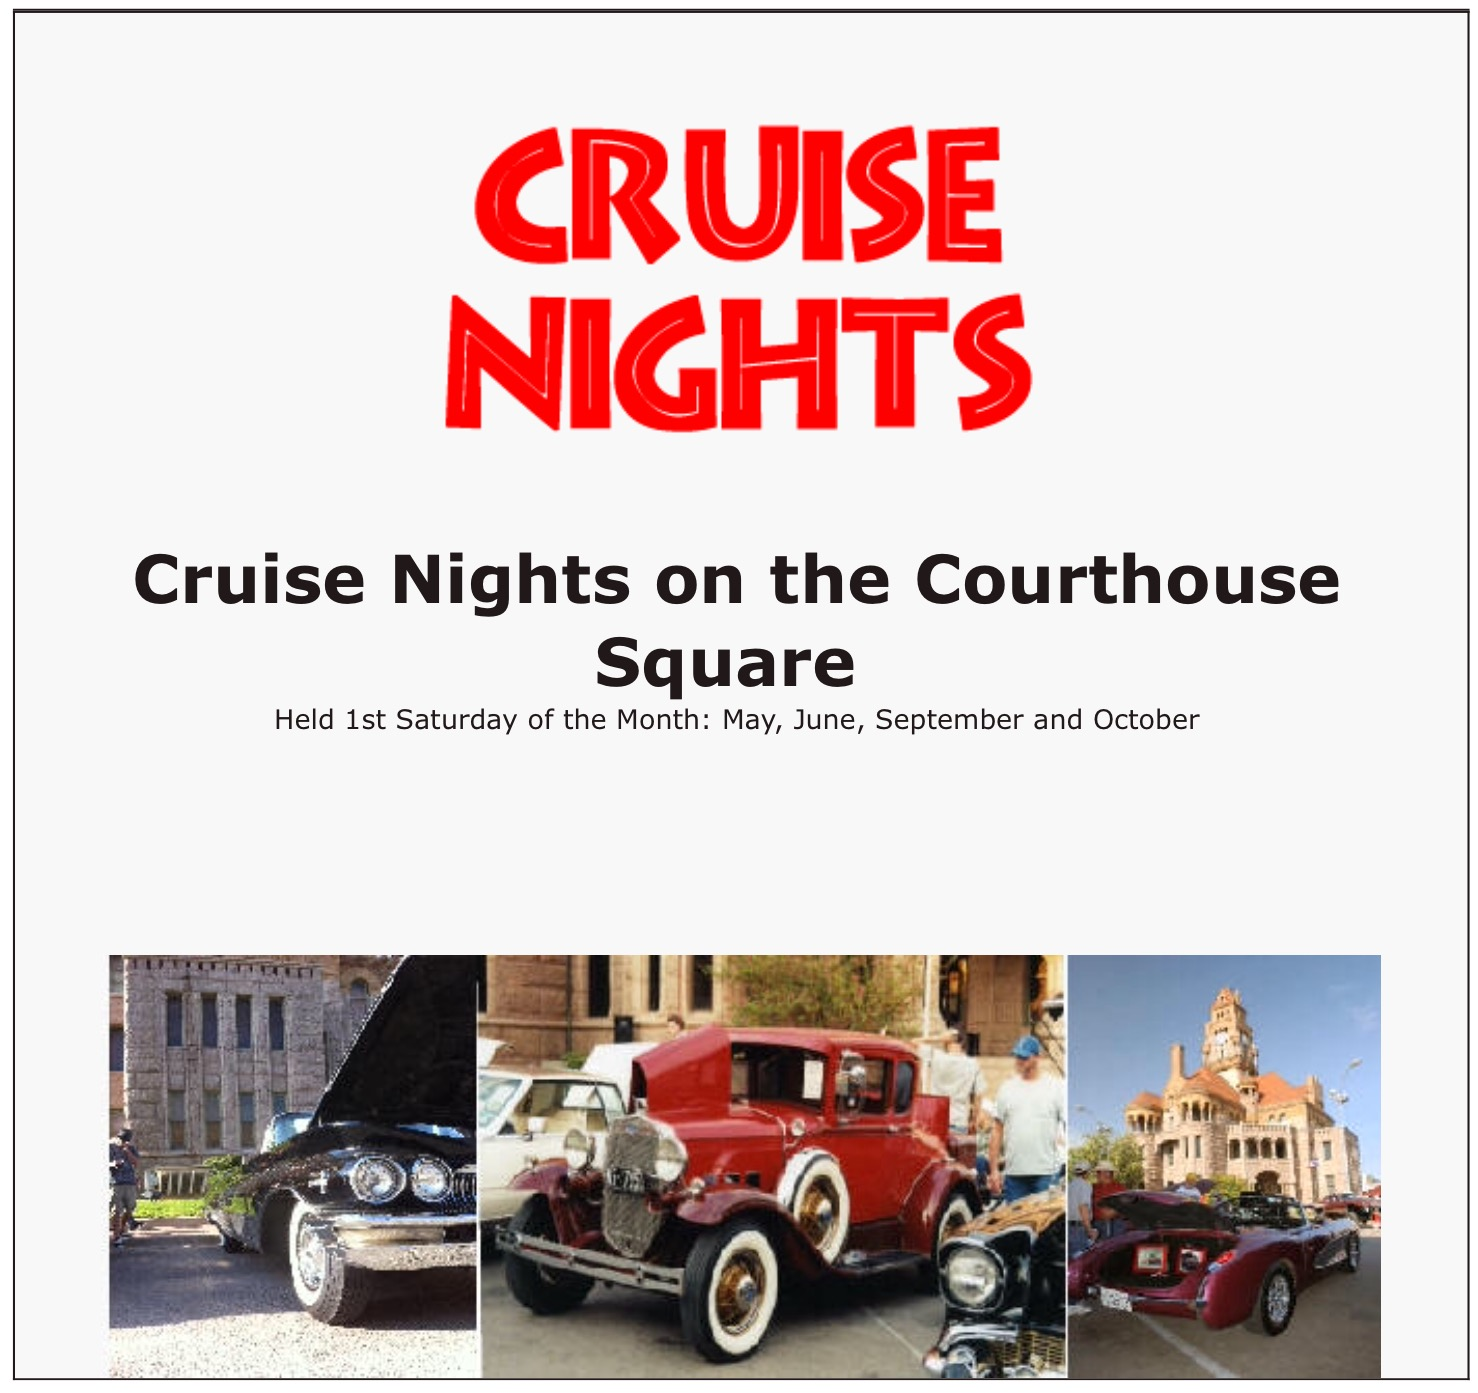 Cruise Nights on the Courthouse Square in Decatur TX